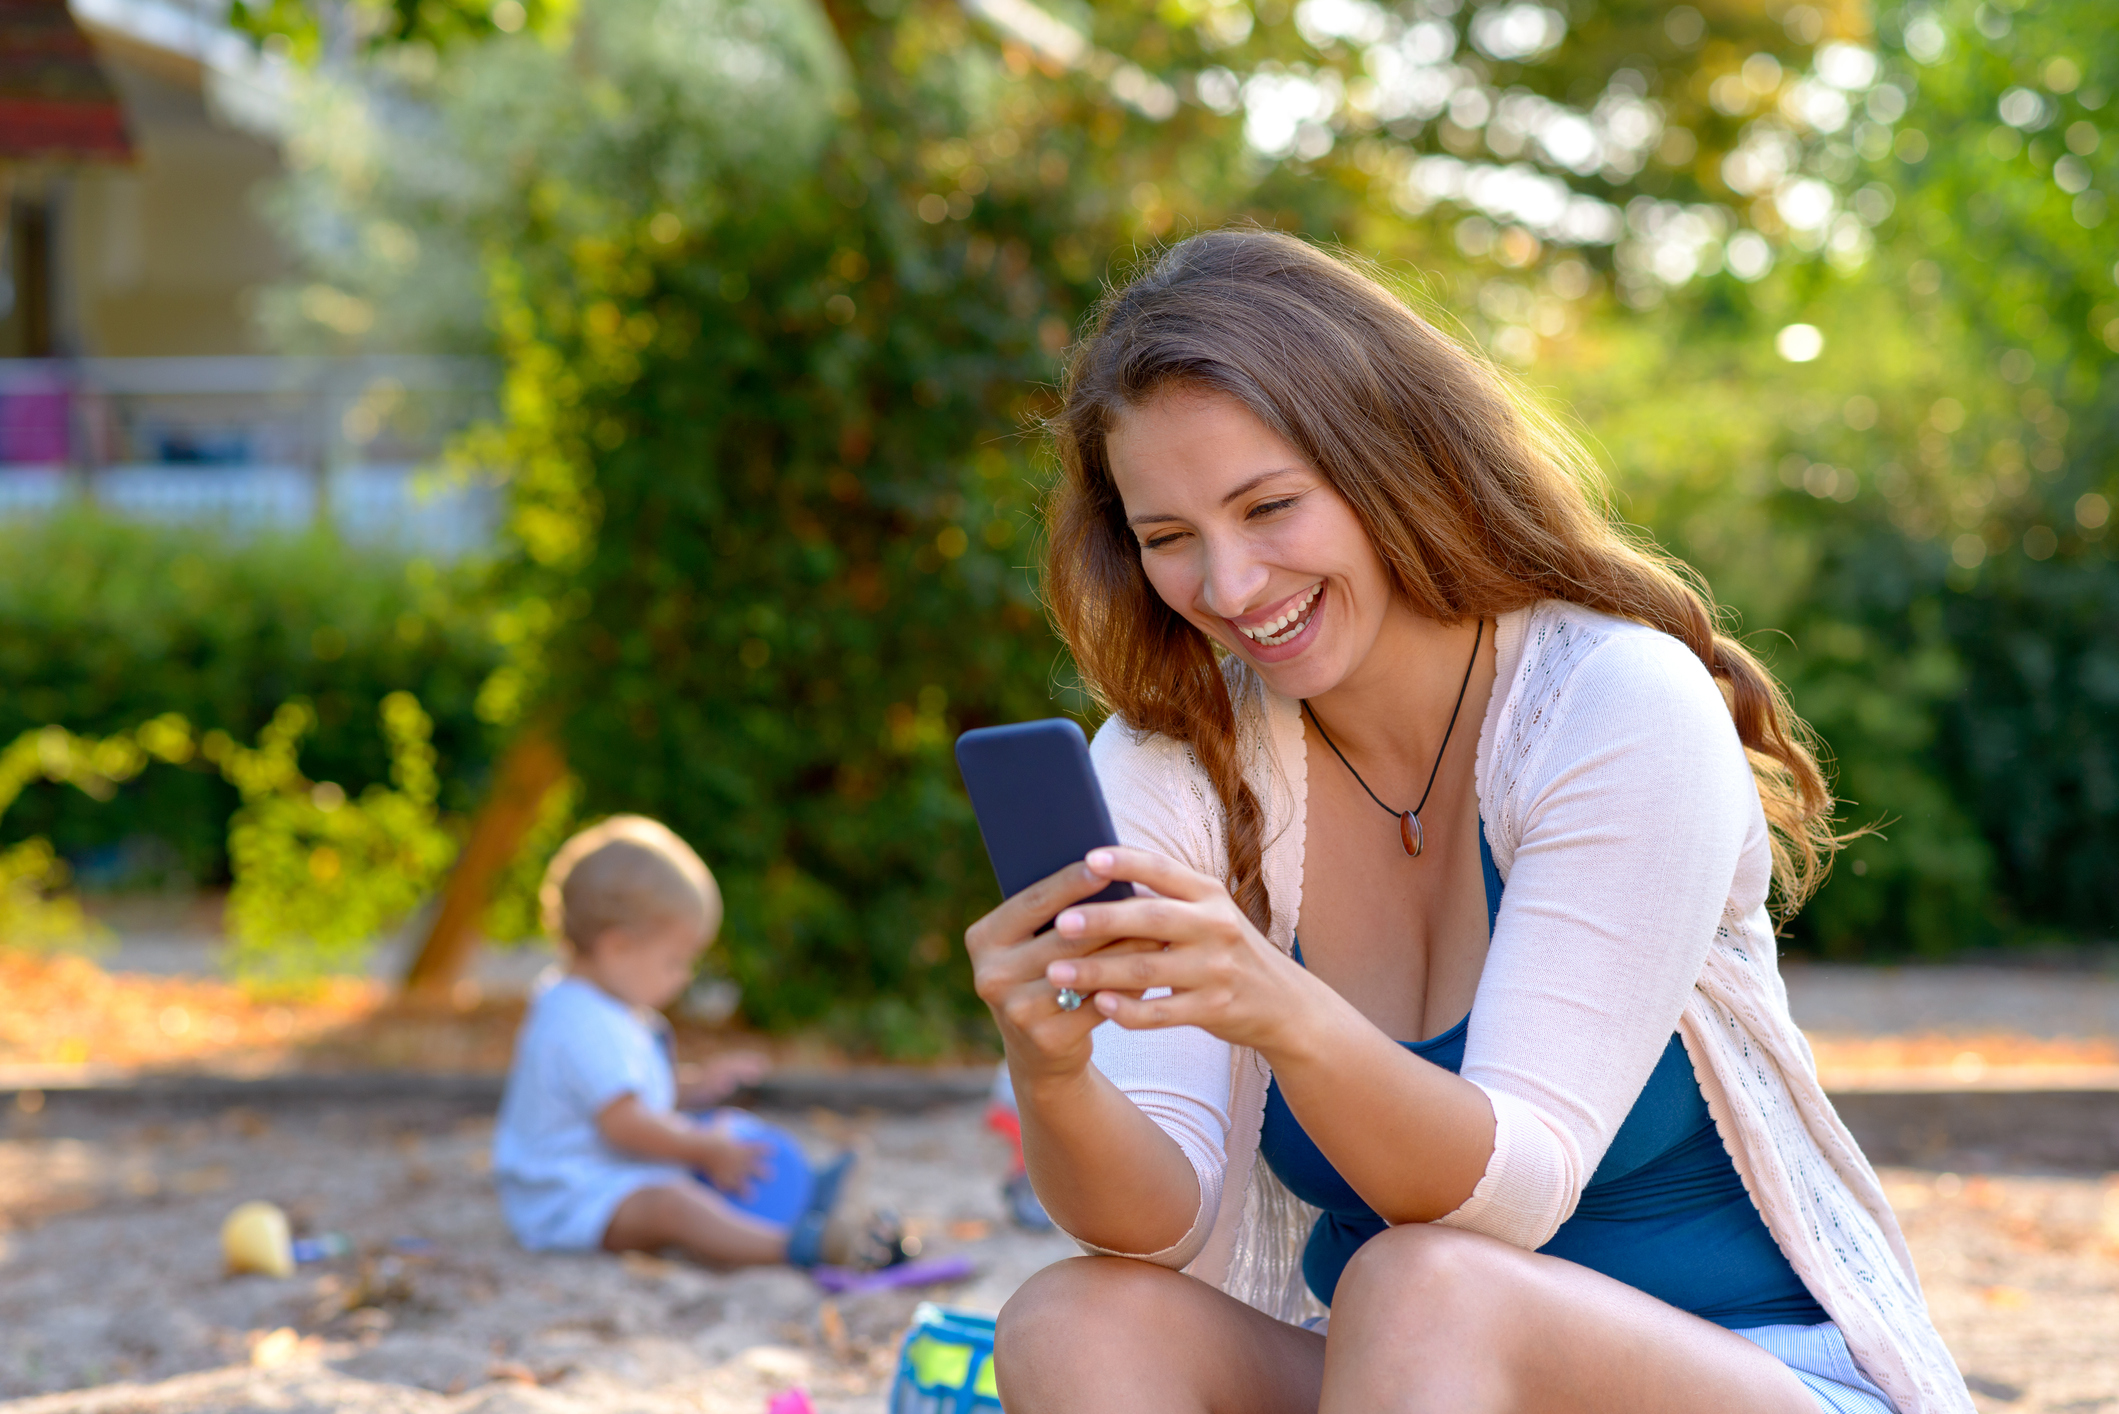 Is Your Cell Phone Use Hurting Your Kid? - Parentology